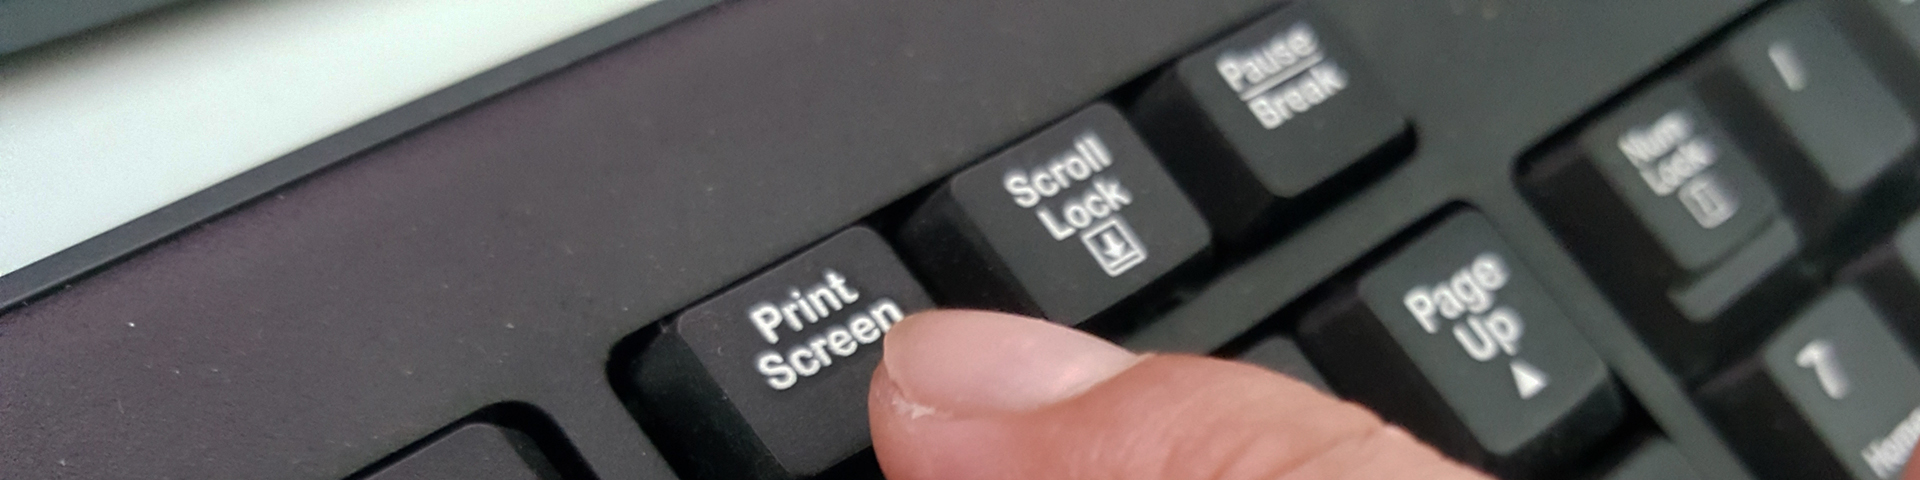 How to Screenshot on Windows: Everything You Need to Know